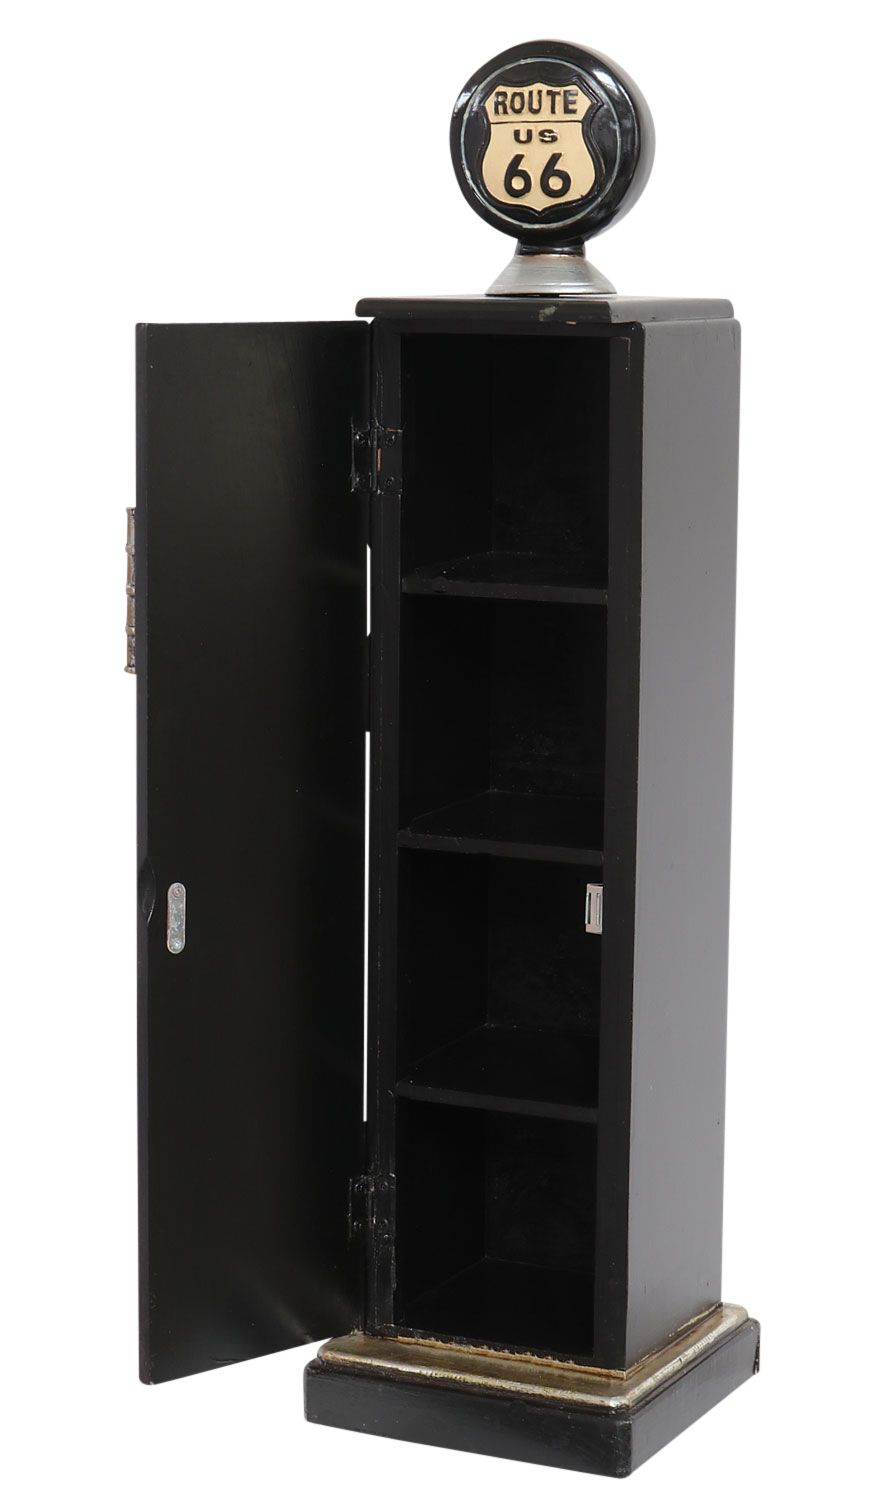 zapfs ule tanks ule 87cm cd regal schrank rack cd st nder route 66 minibar ebay. Black Bedroom Furniture Sets. Home Design Ideas